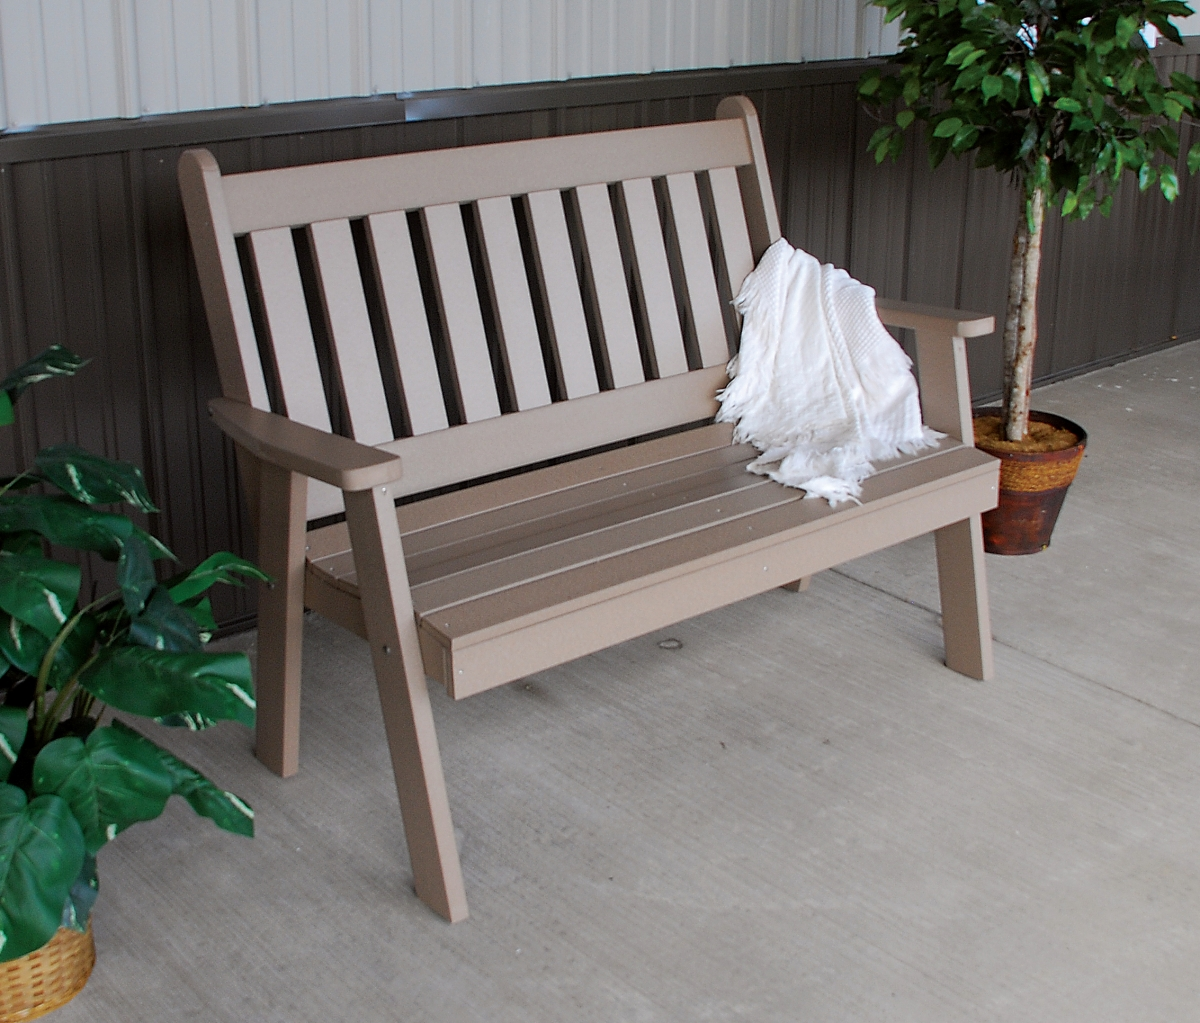 English Garden Bench 28 Images Treated Pine English Garden Bench 4 English Garden Bench